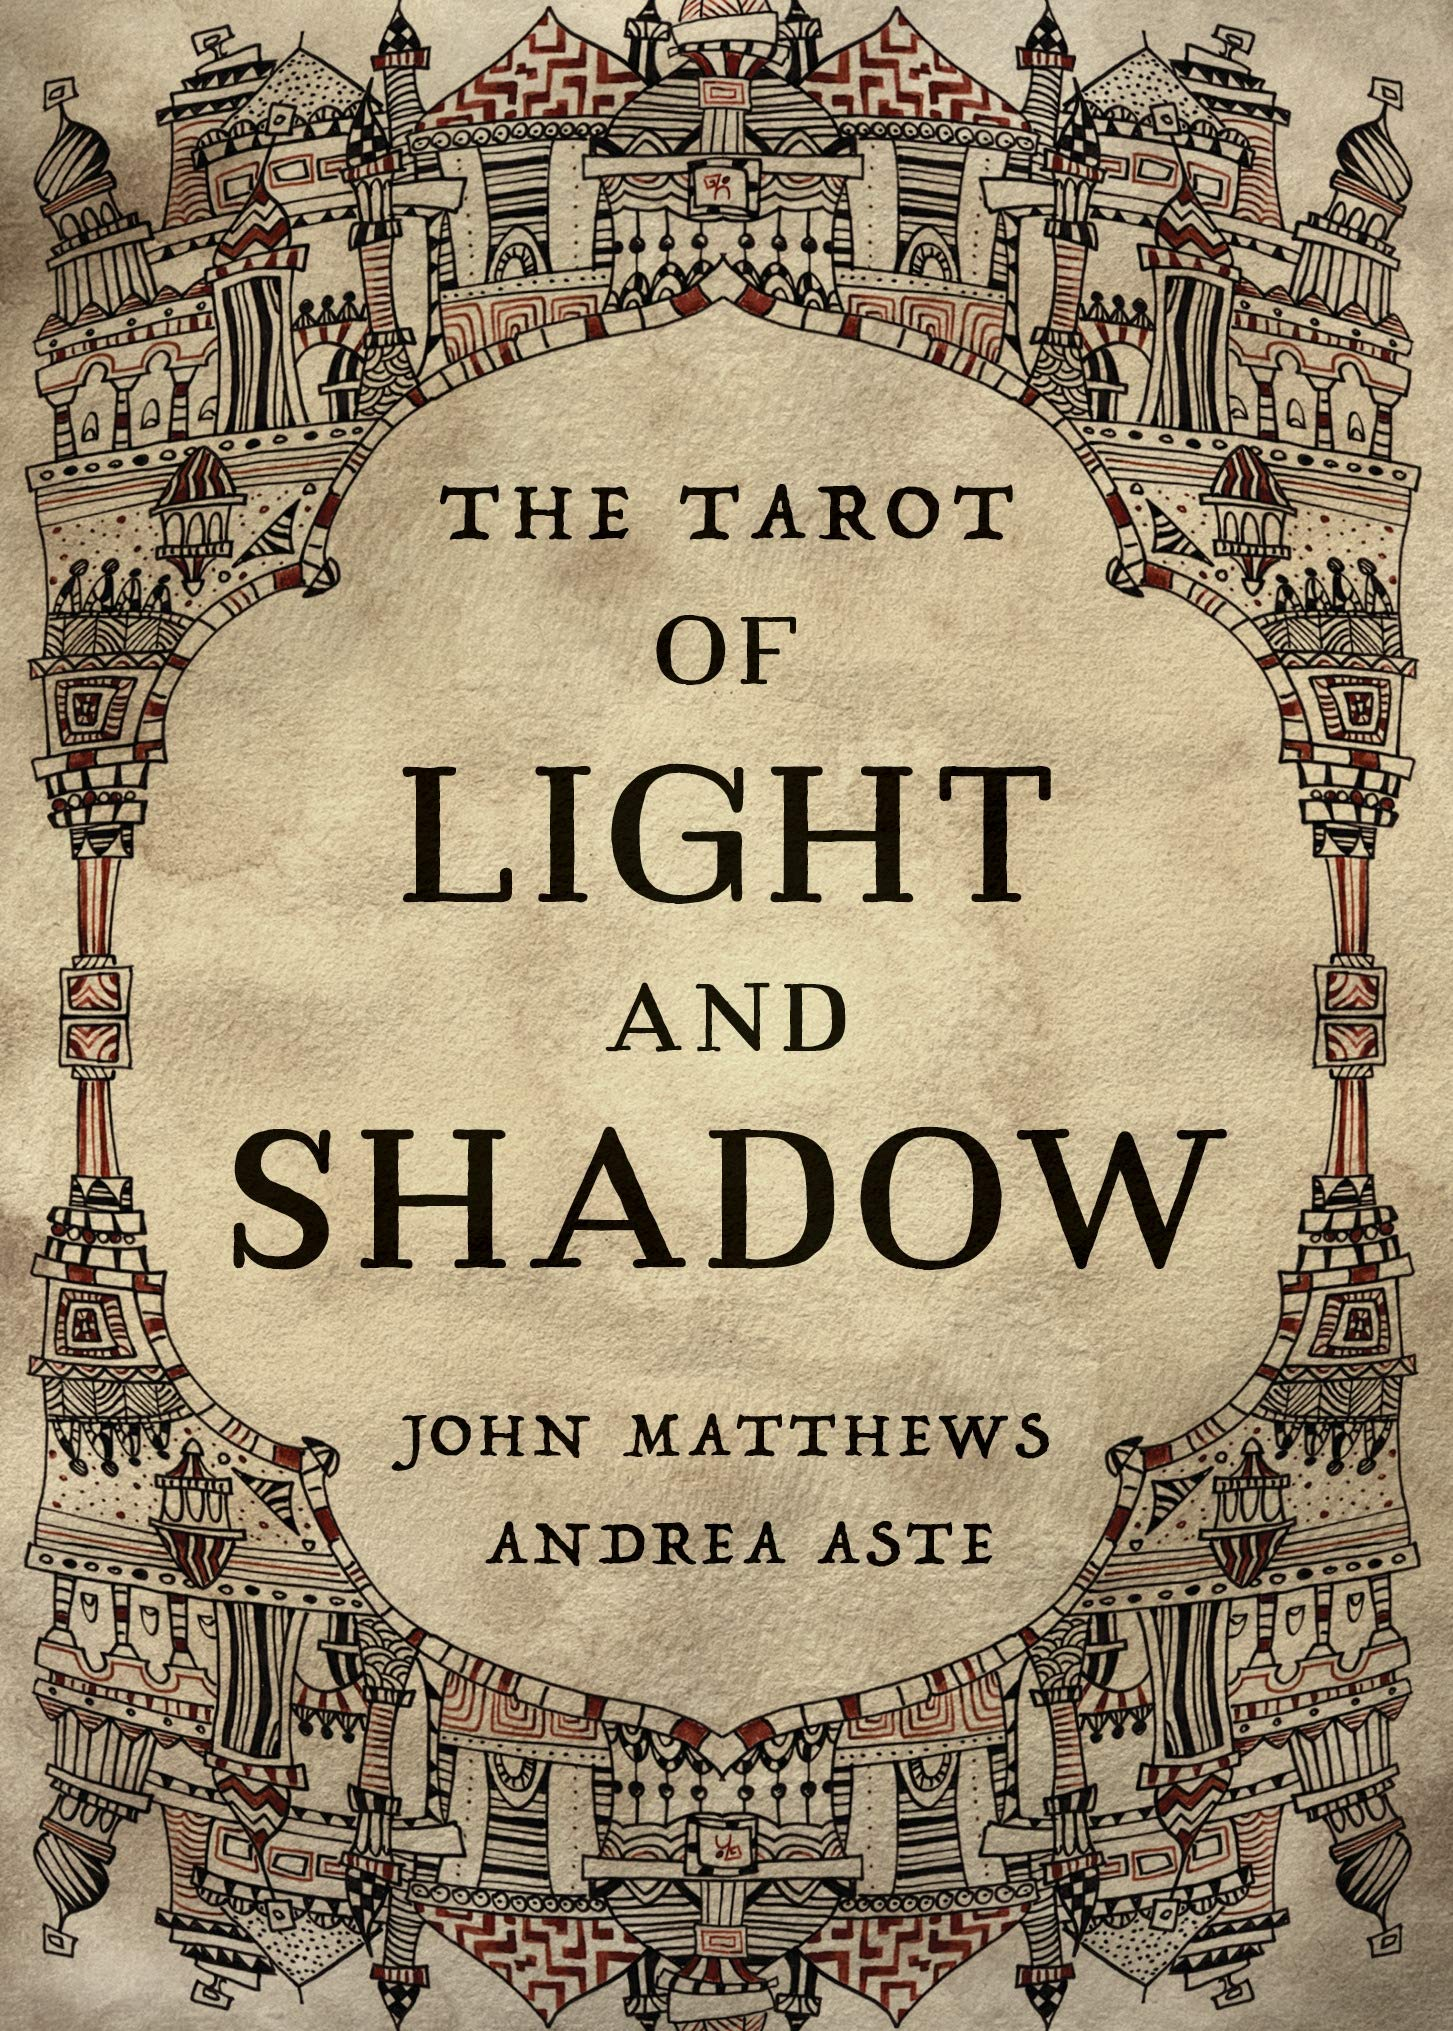 The Tarot of Light and Shadow